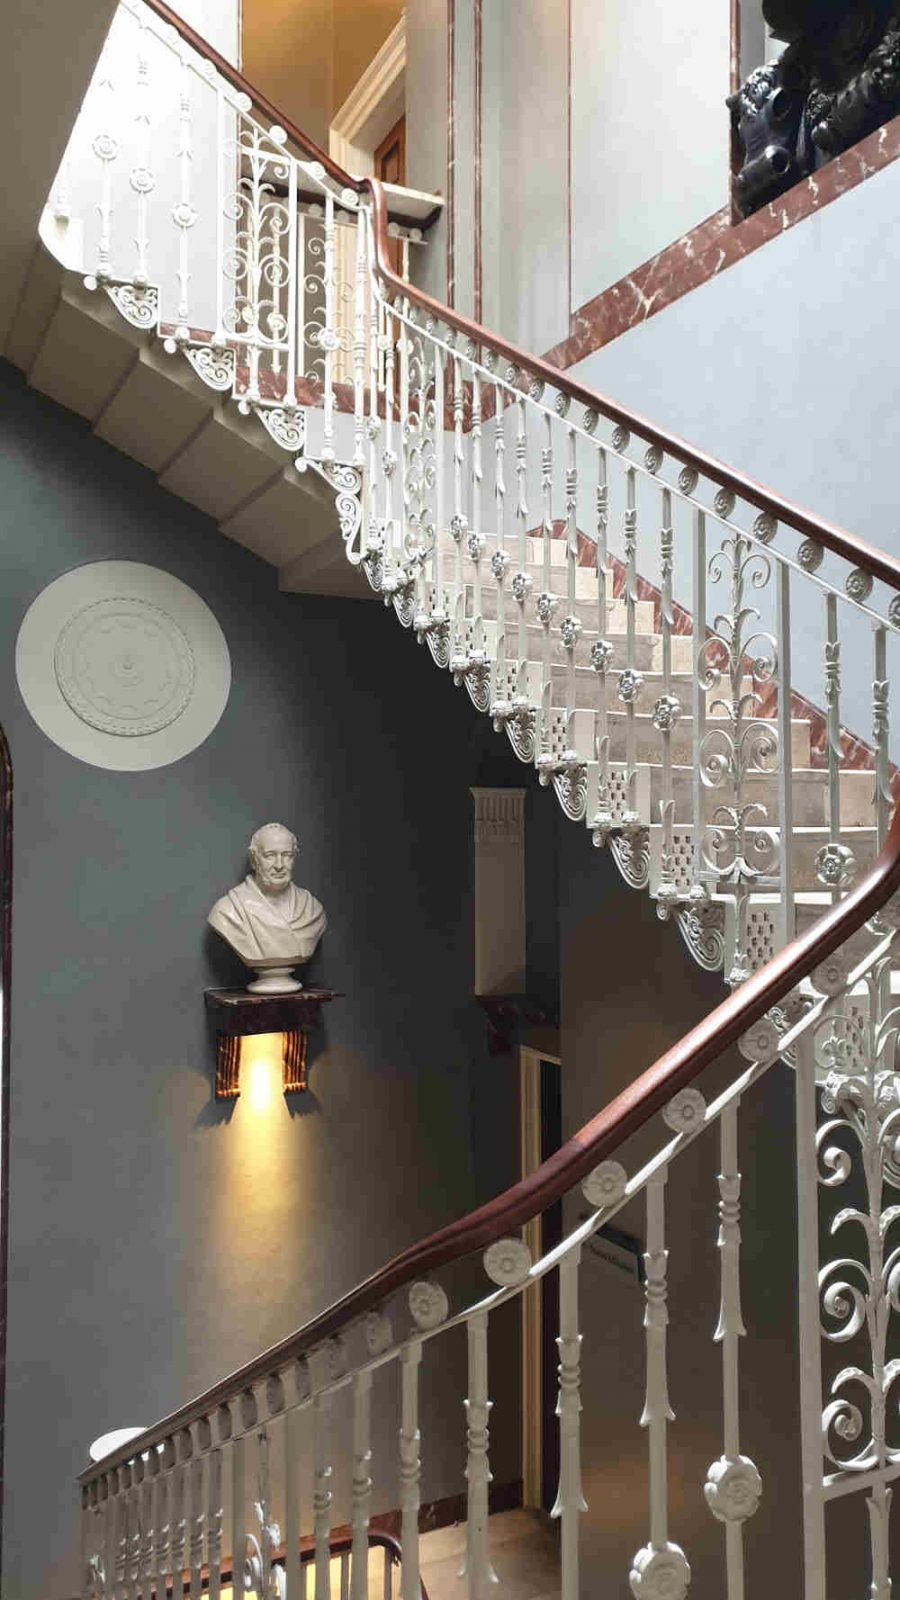 Pitzhanger restoration, John Soane, vestibule. skylight, Julian Harrap , Jestrco and Whiles